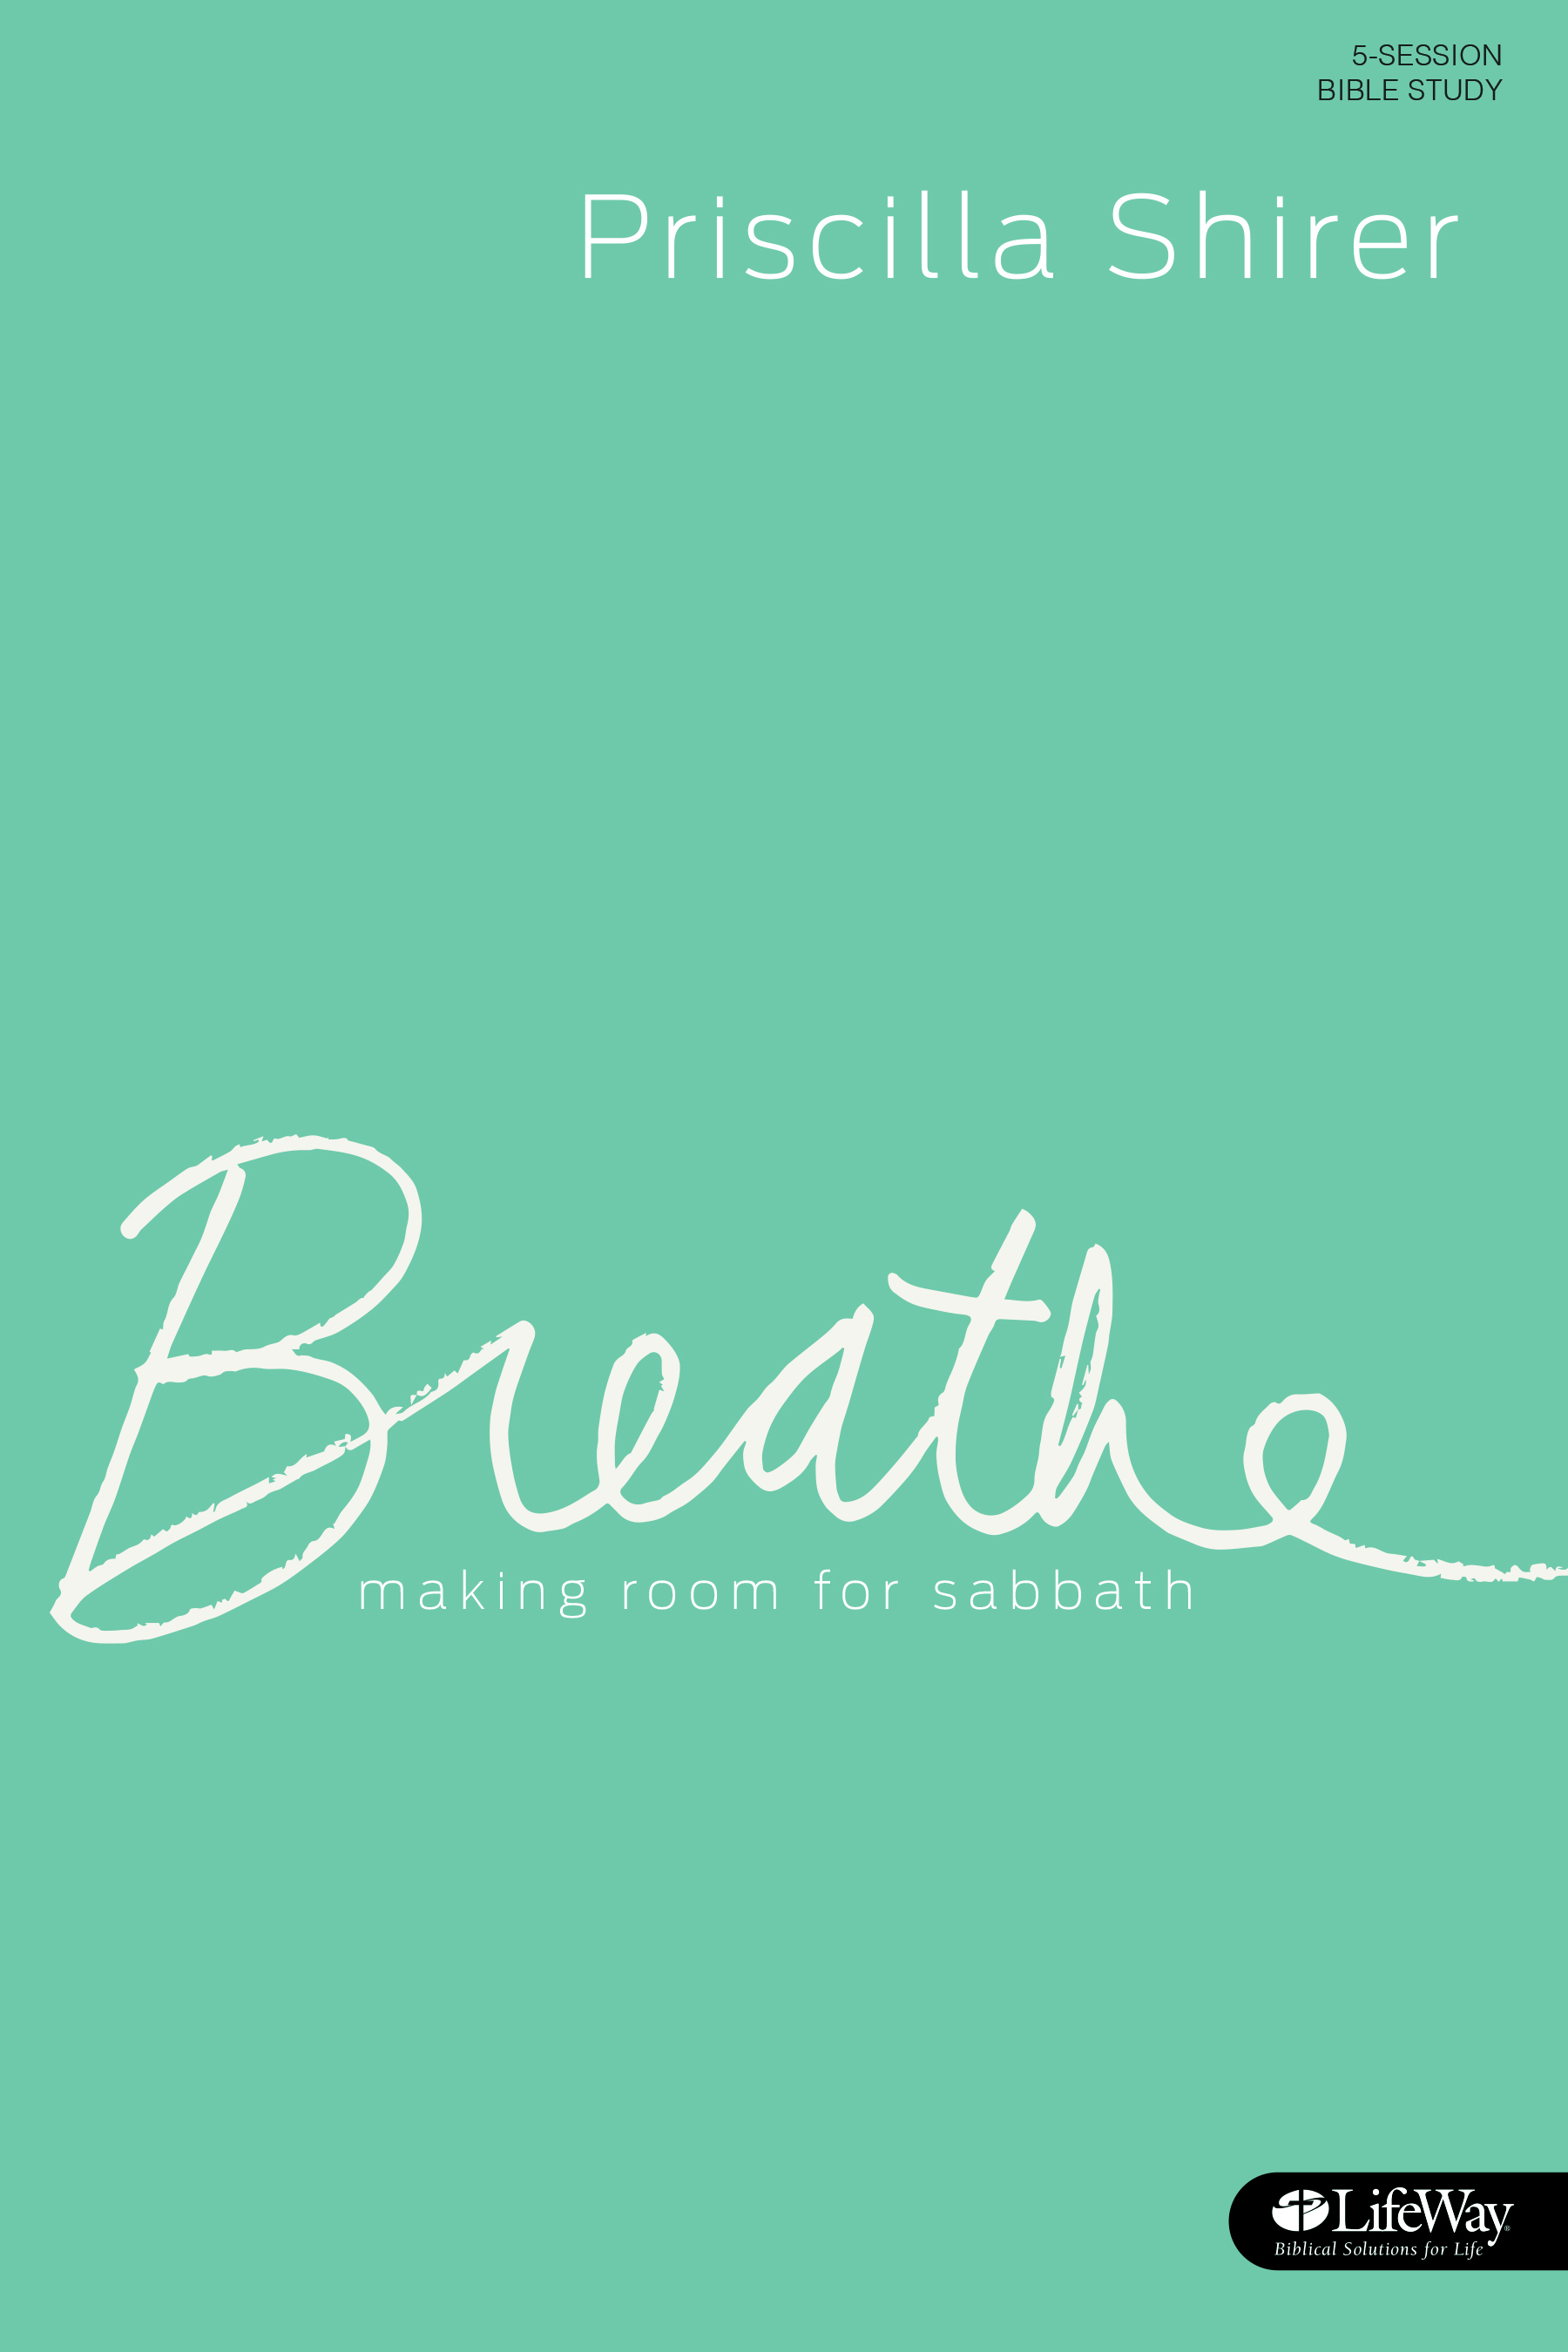 breathe_book.jpg